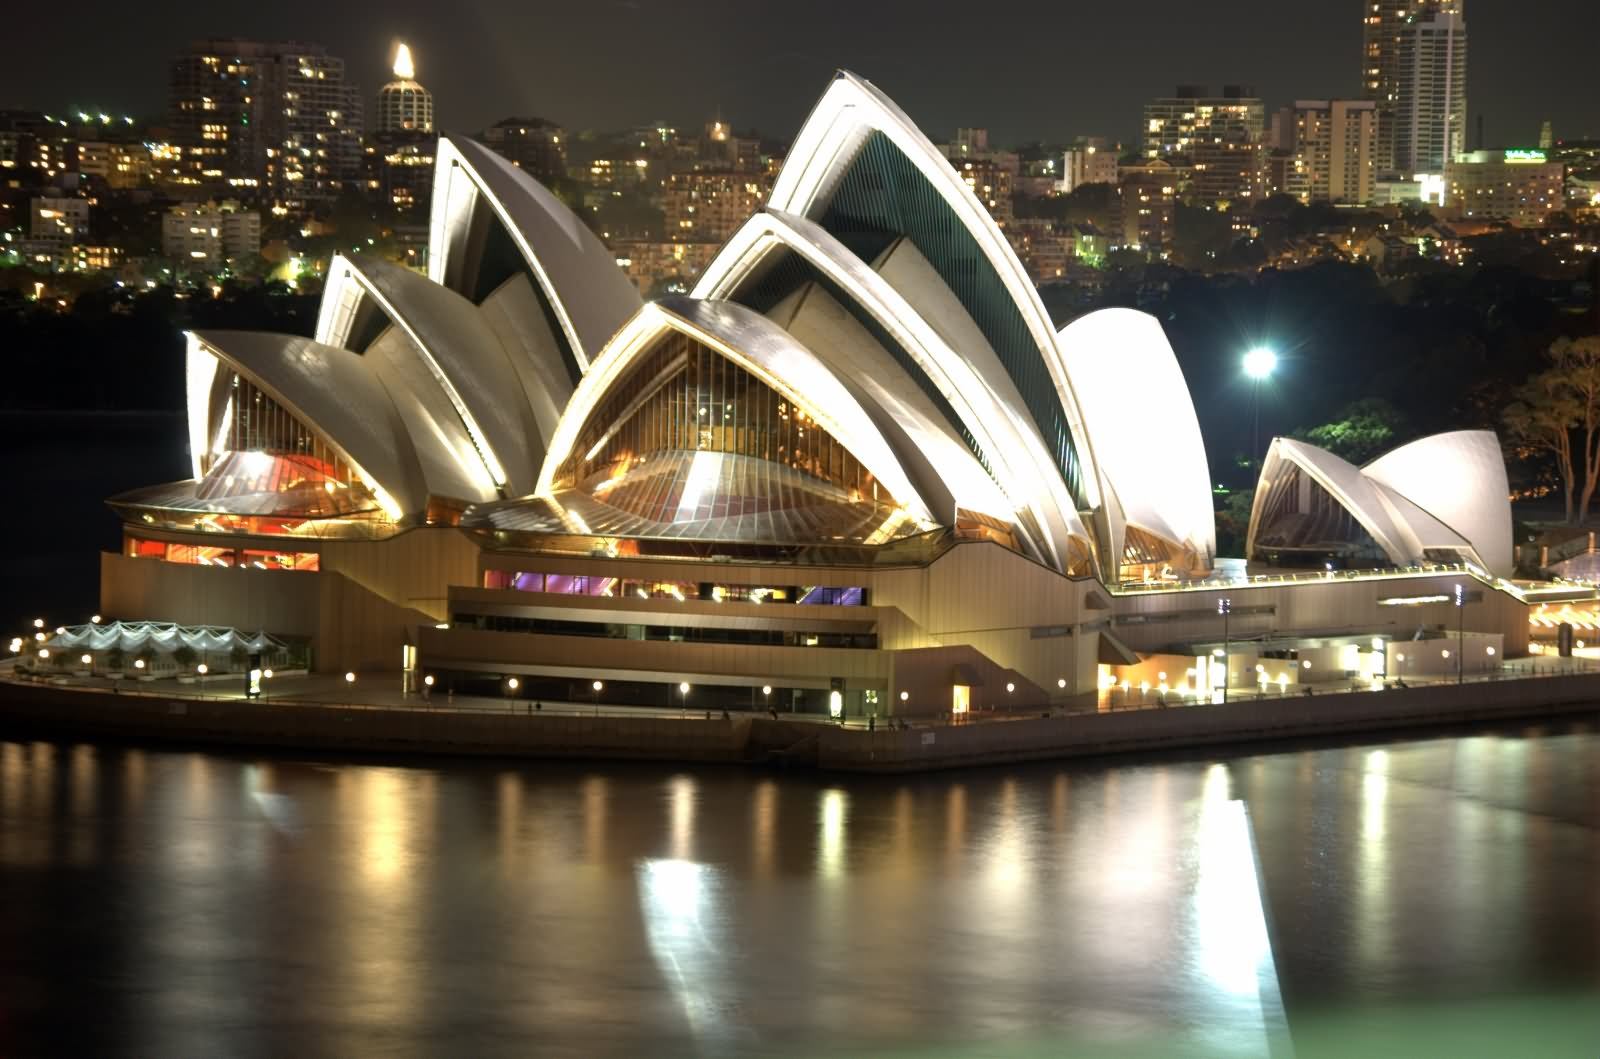 Adorable-Night-View-Of-Sydney-Opera-House2.jpg